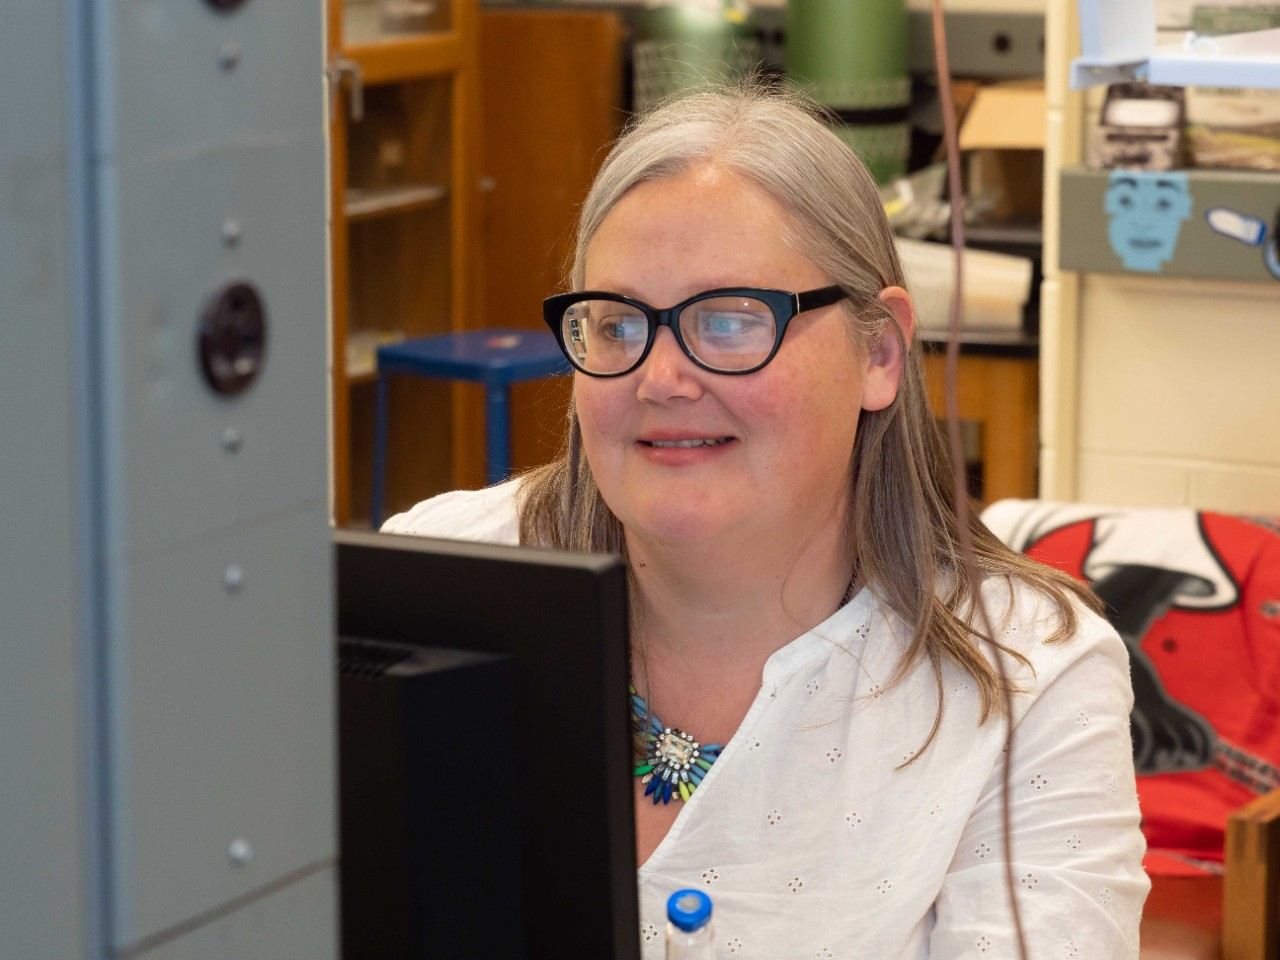 UC geology professor Amy Townsend-Small has spent her career studying methane and groundwater.